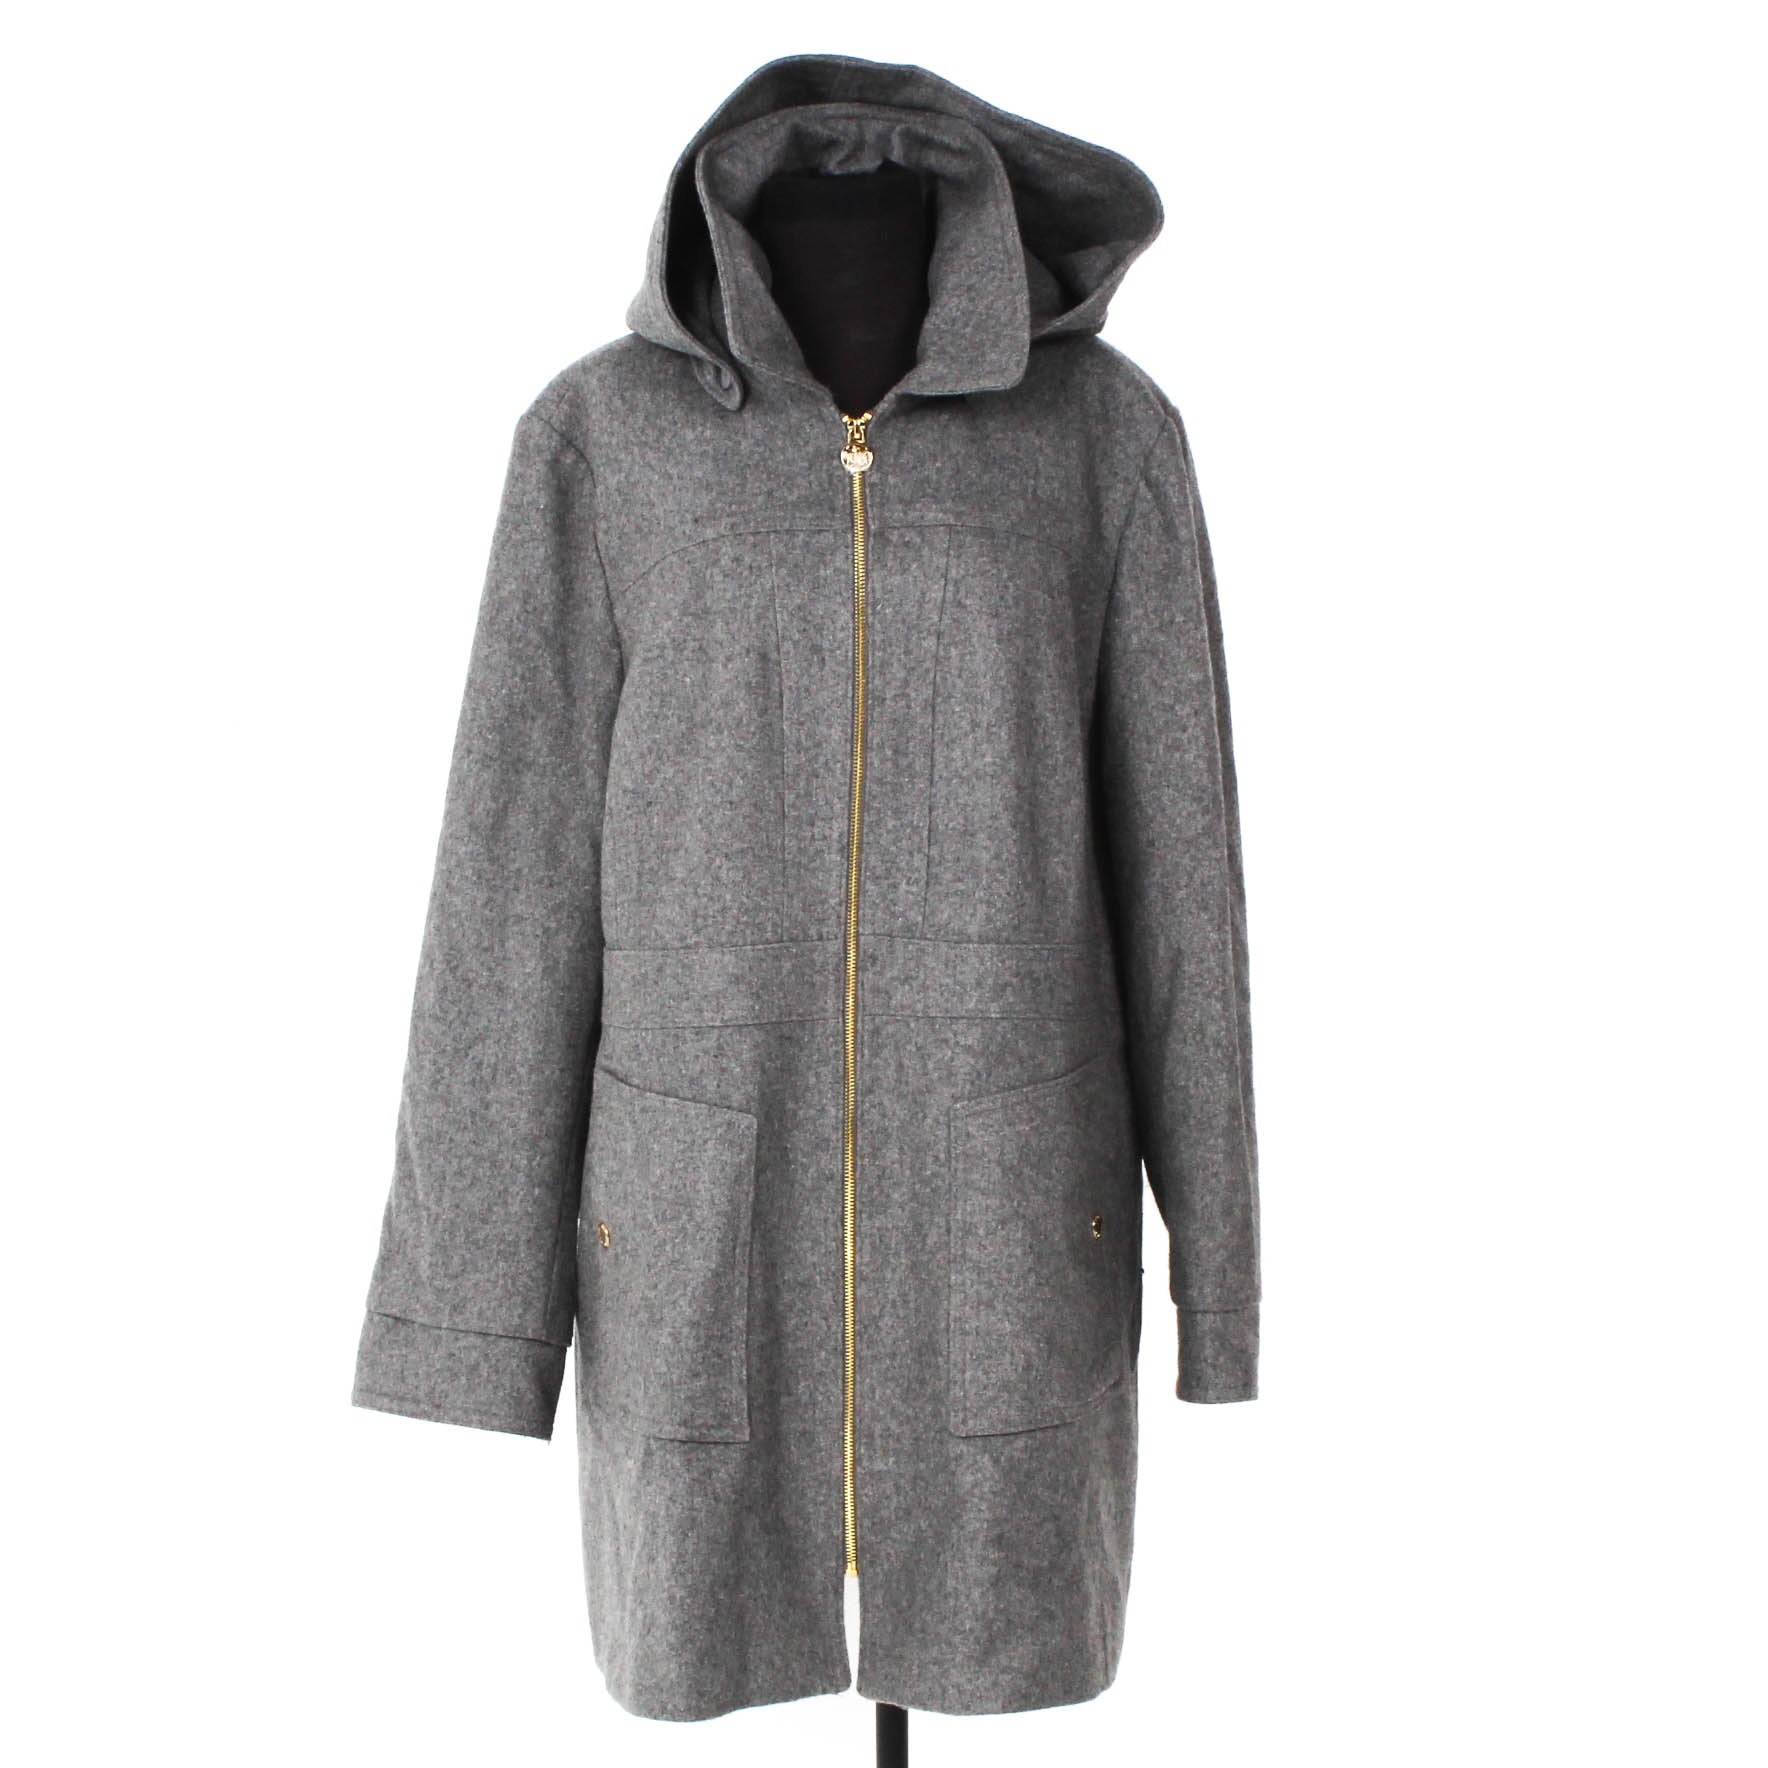 MICHAEL Michael Kors Grey Wool Blend Coat